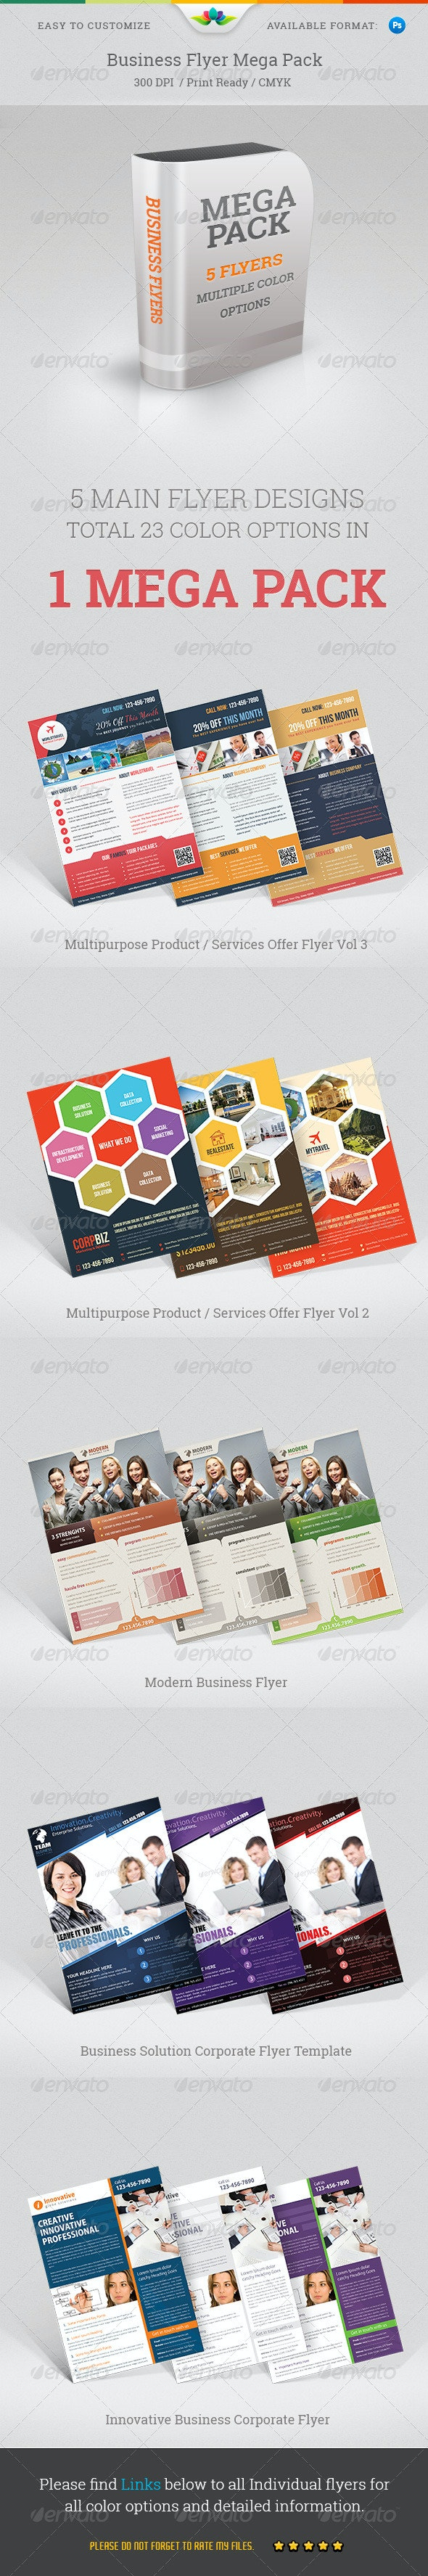 Business Flyers Mega Pack - Corporate Flyers